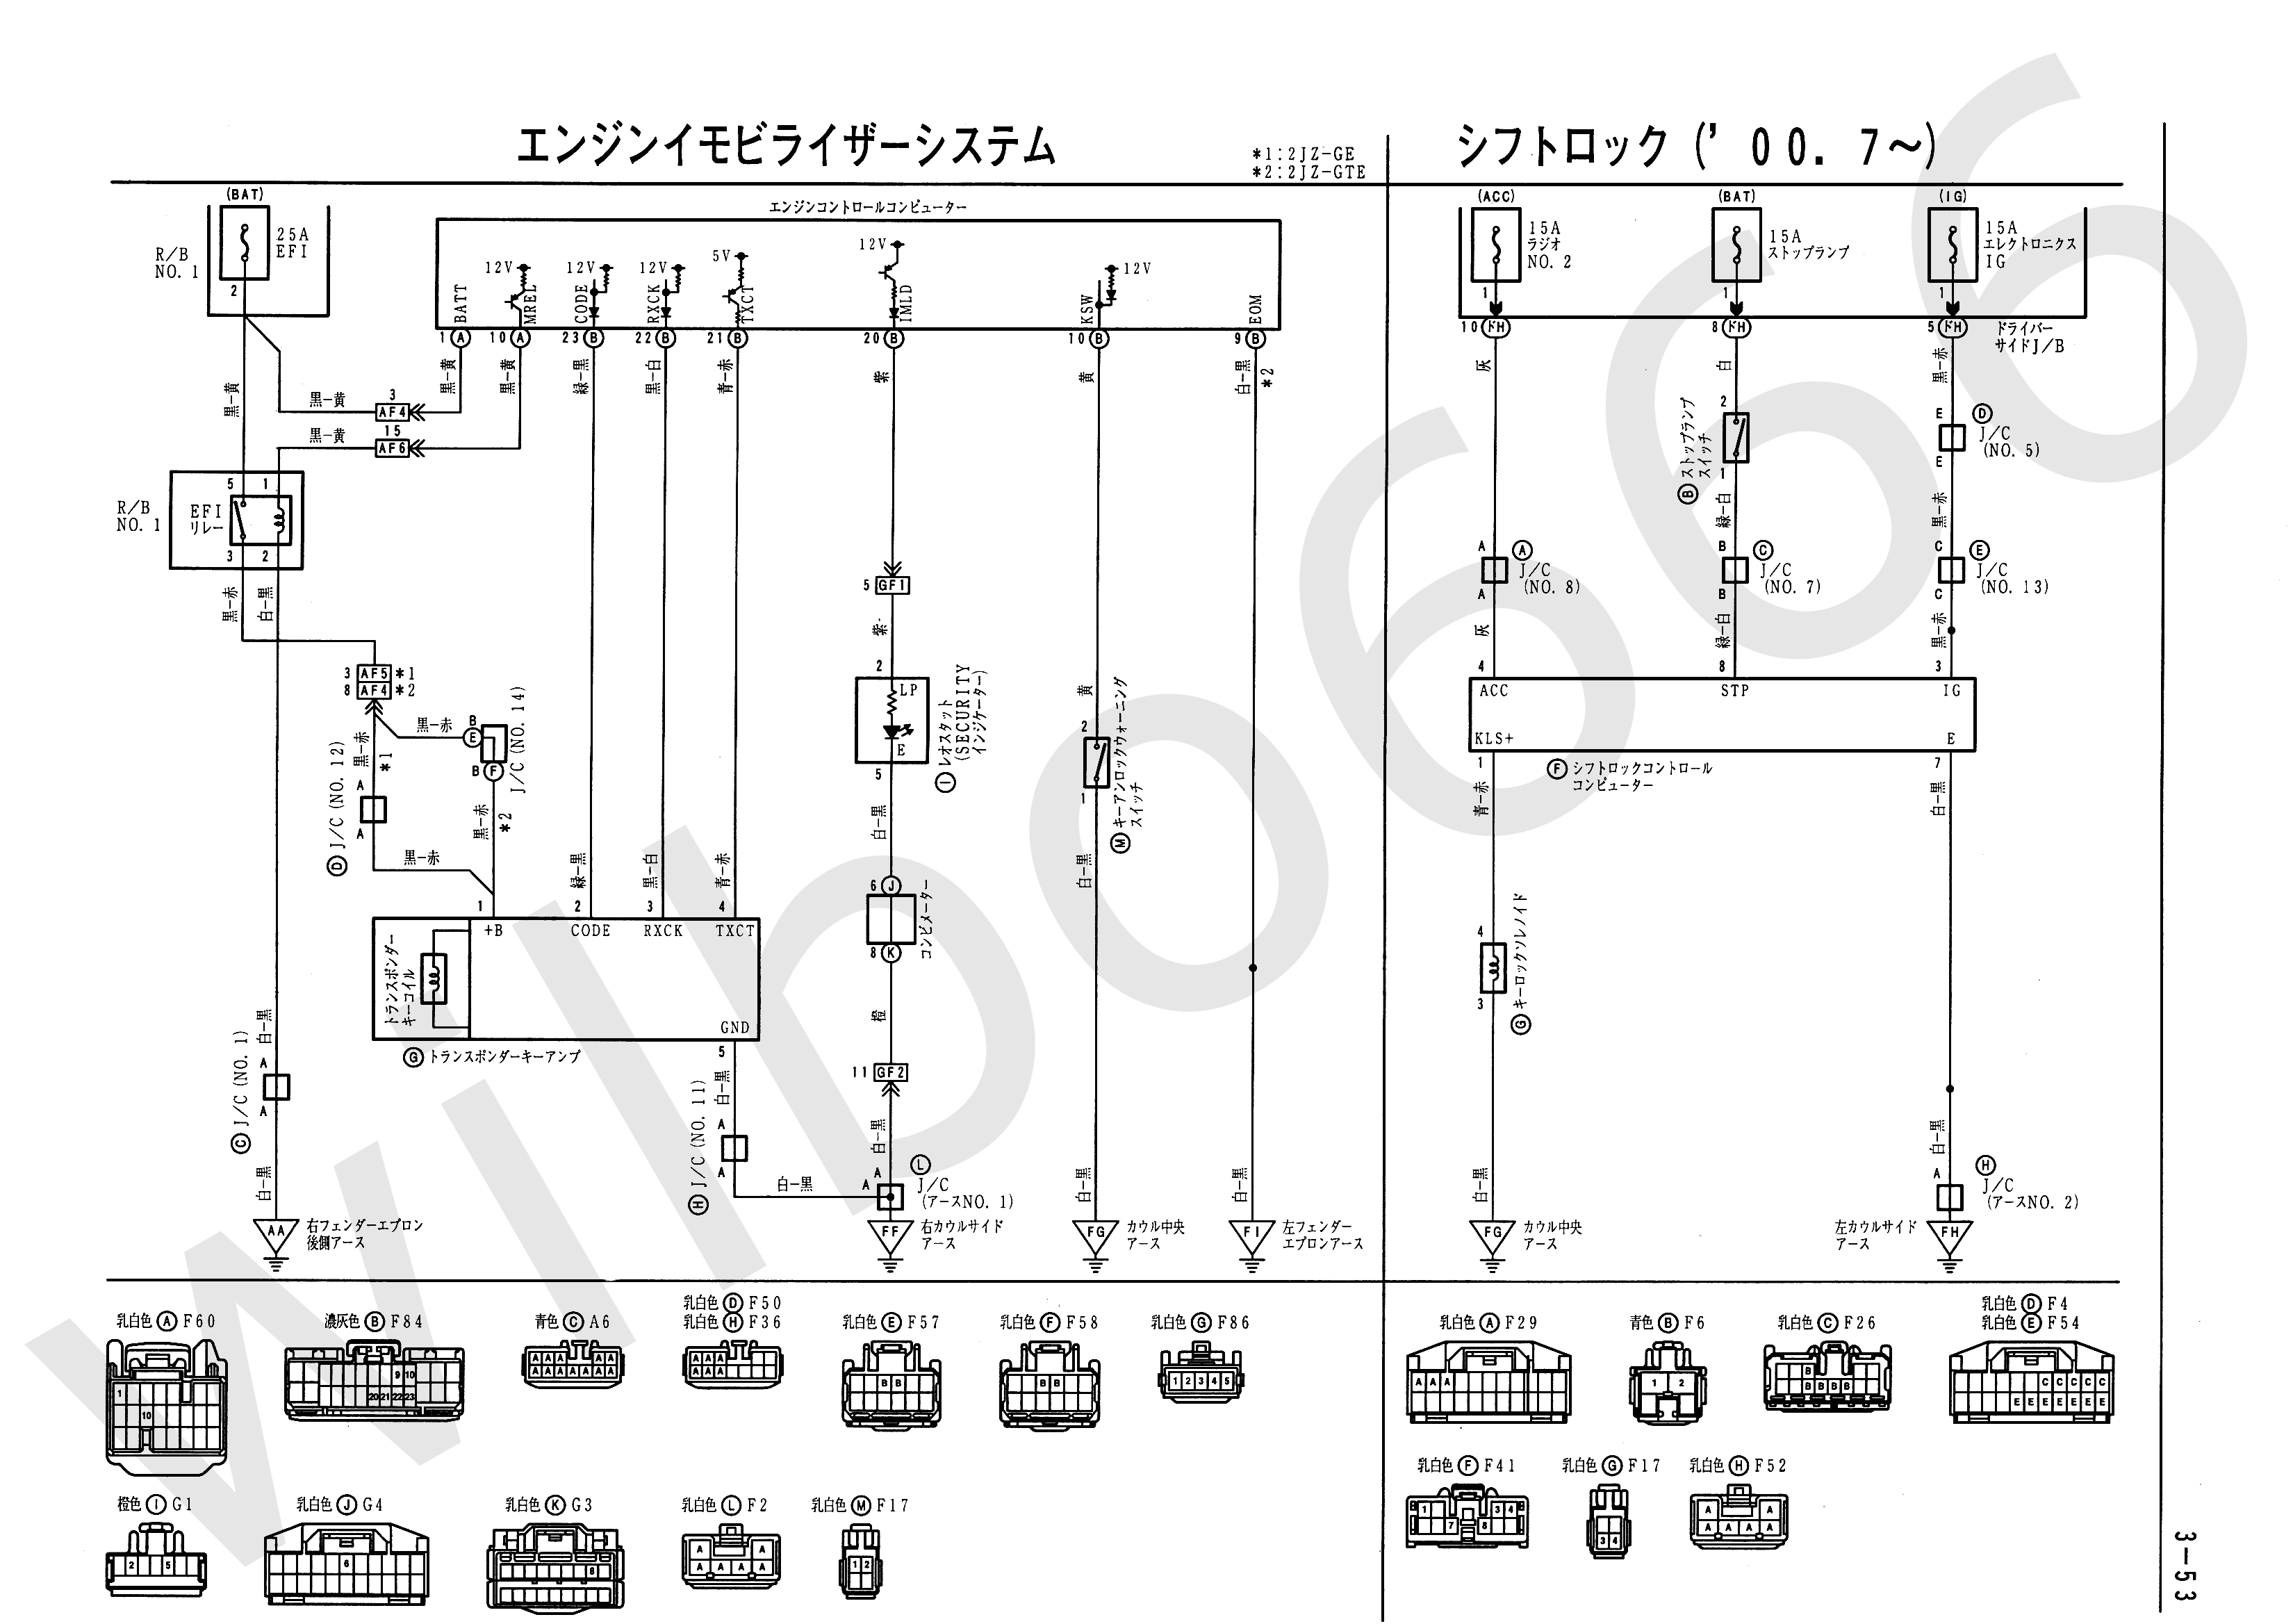 JZS161 Electrical Wiring Diagram 6748505 3 53 apexi vafc wiring diagram apexi vafc wiring diagram at fashall.co